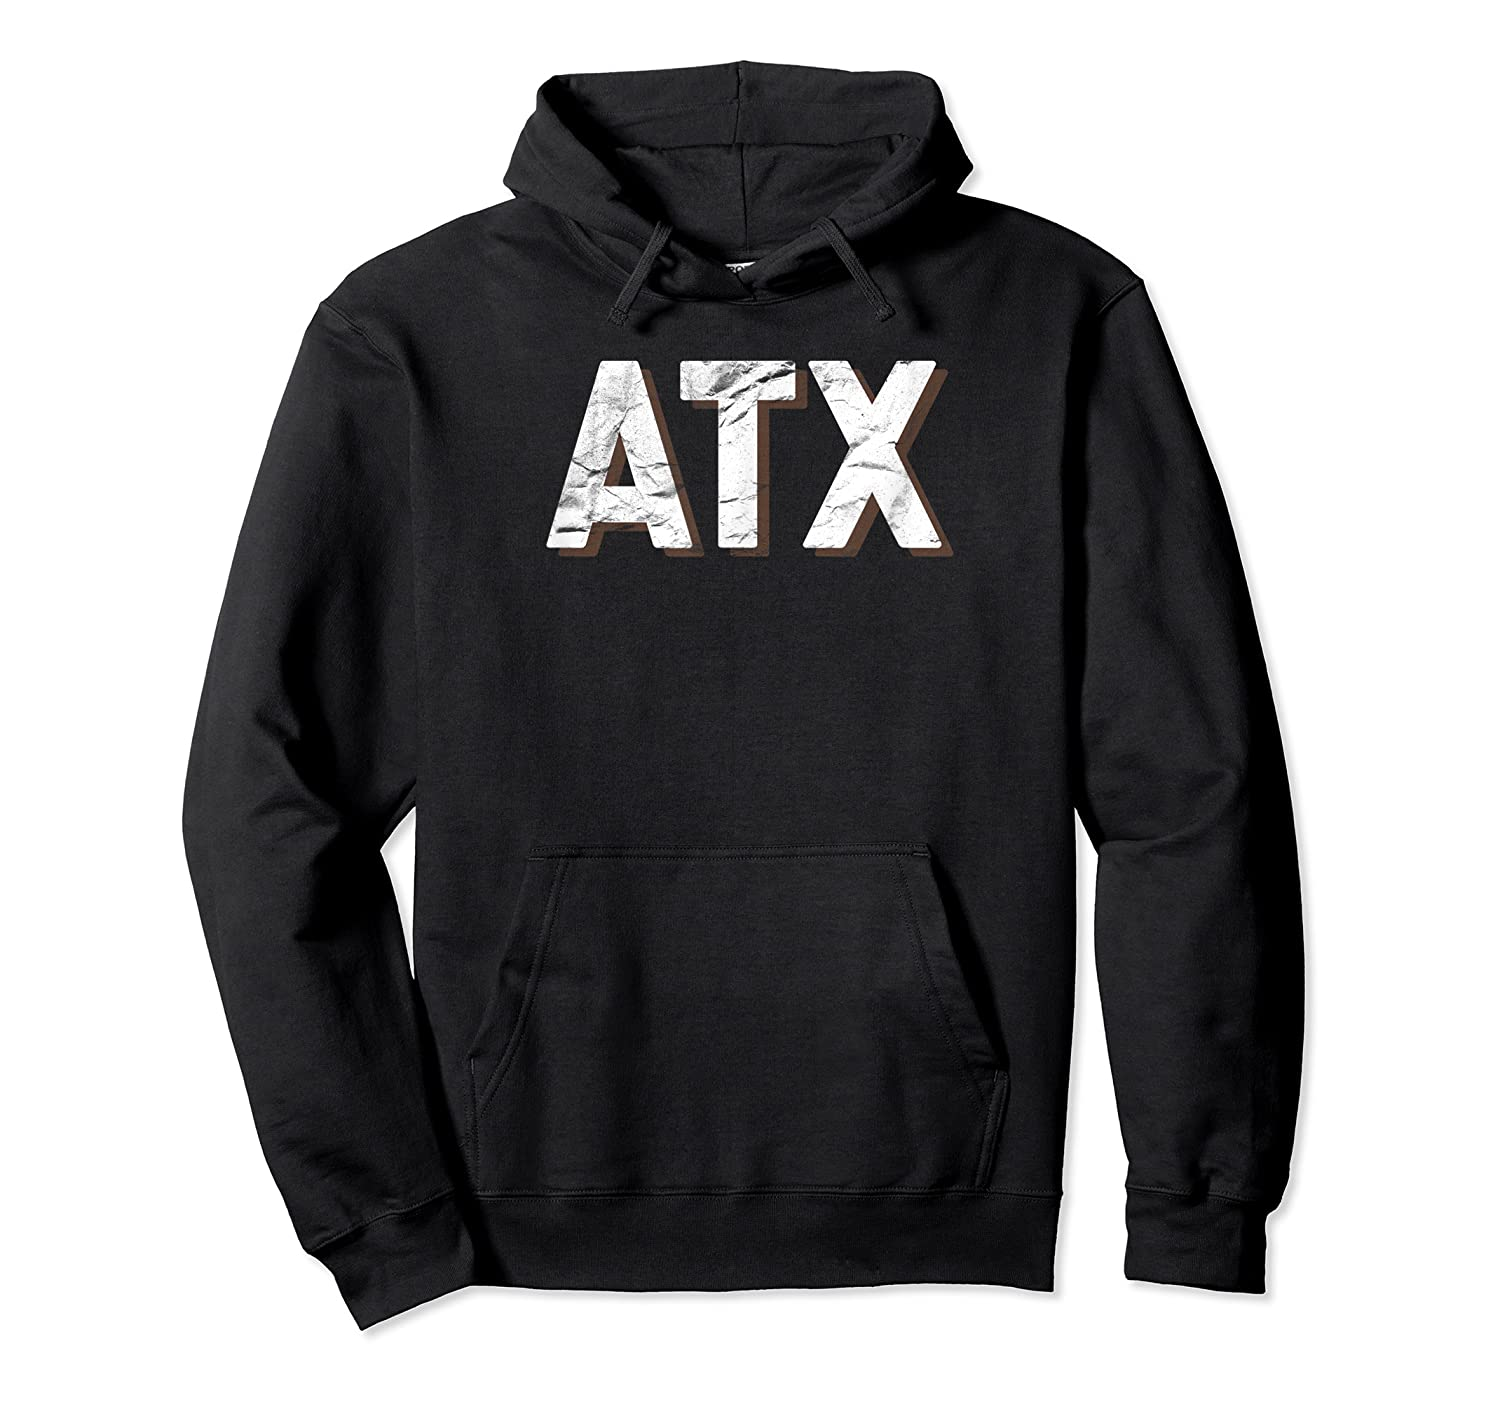 Atx Austin For Tx Texas City Natives Visitors T Shirt Unisex Pullover Hoodie